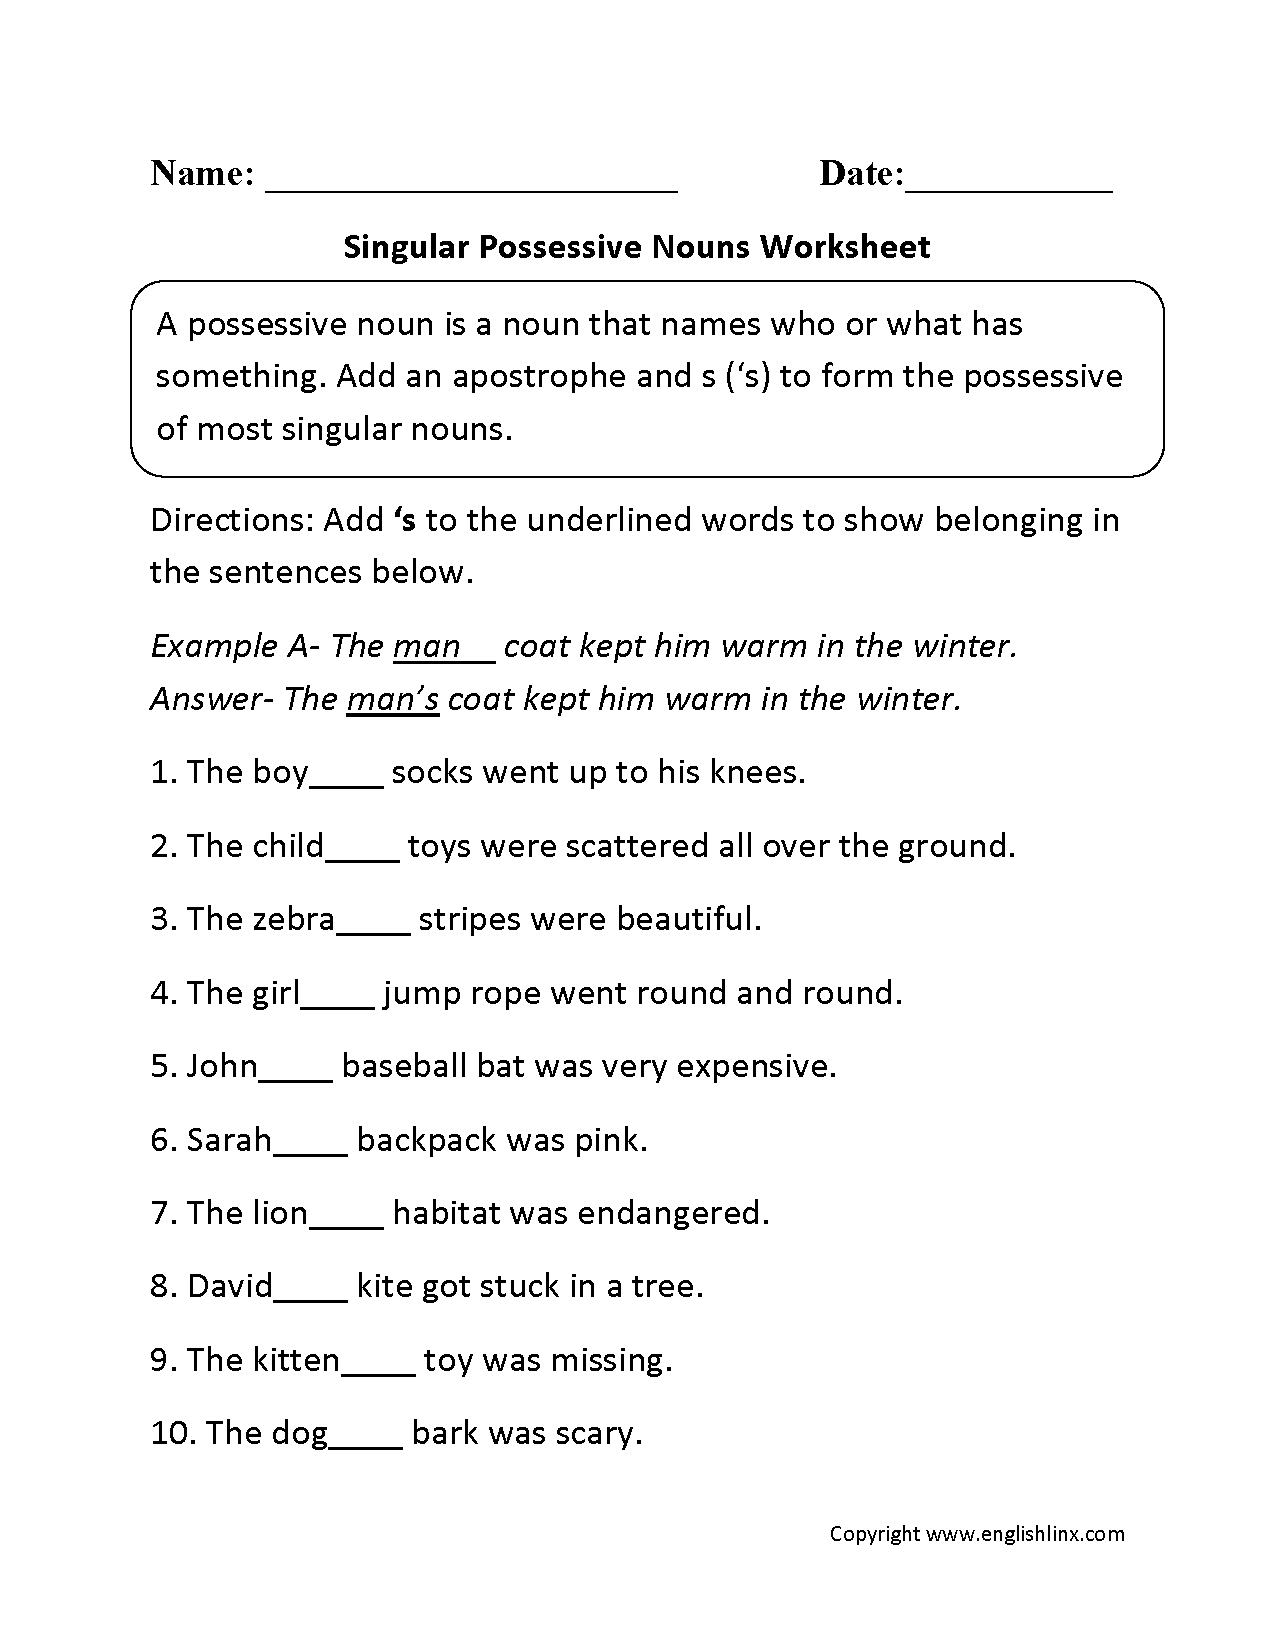 Aldiablosus  Pretty Nouns Worksheets  Possessive Nouns Worksheets With Likable Possessive Nouns Worksheets With Enchanting Worksheet For Numbers Also Literacy Worksheets Free In Addition Free Th Grade Division Worksheets And Printable Times Table Worksheet As Well As Halving Numbers Worksheet Additionally Worksheet On Shapes For Kindergarten From Englishlinxcom With Aldiablosus  Likable Nouns Worksheets  Possessive Nouns Worksheets With Enchanting Possessive Nouns Worksheets And Pretty Worksheet For Numbers Also Literacy Worksheets Free In Addition Free Th Grade Division Worksheets From Englishlinxcom